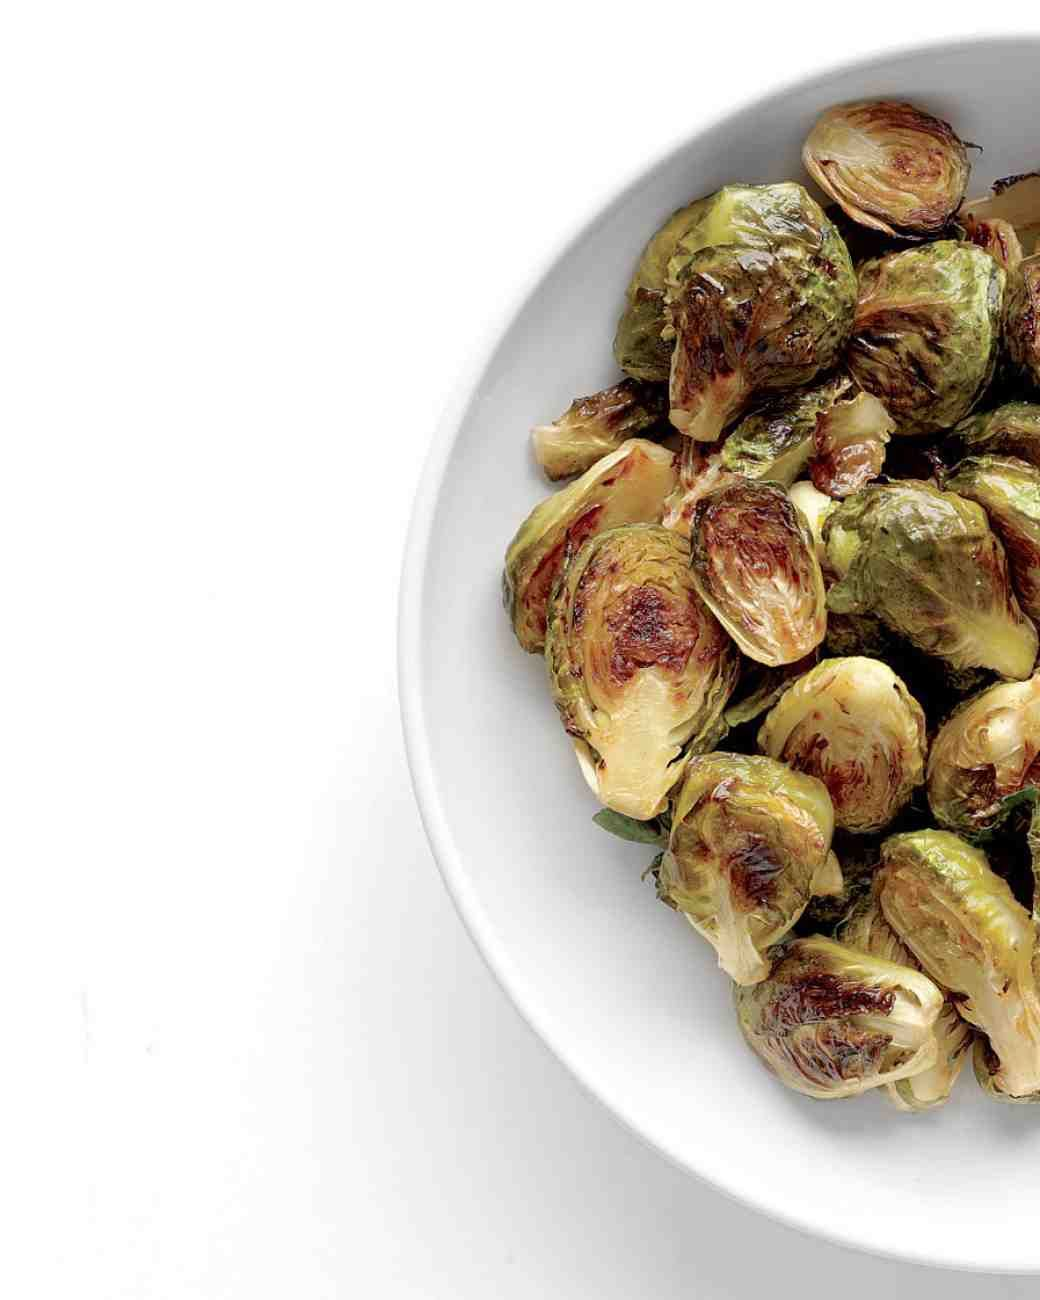 Brussel Sprout Recipes Maple Syrup Balsamic Vinegar